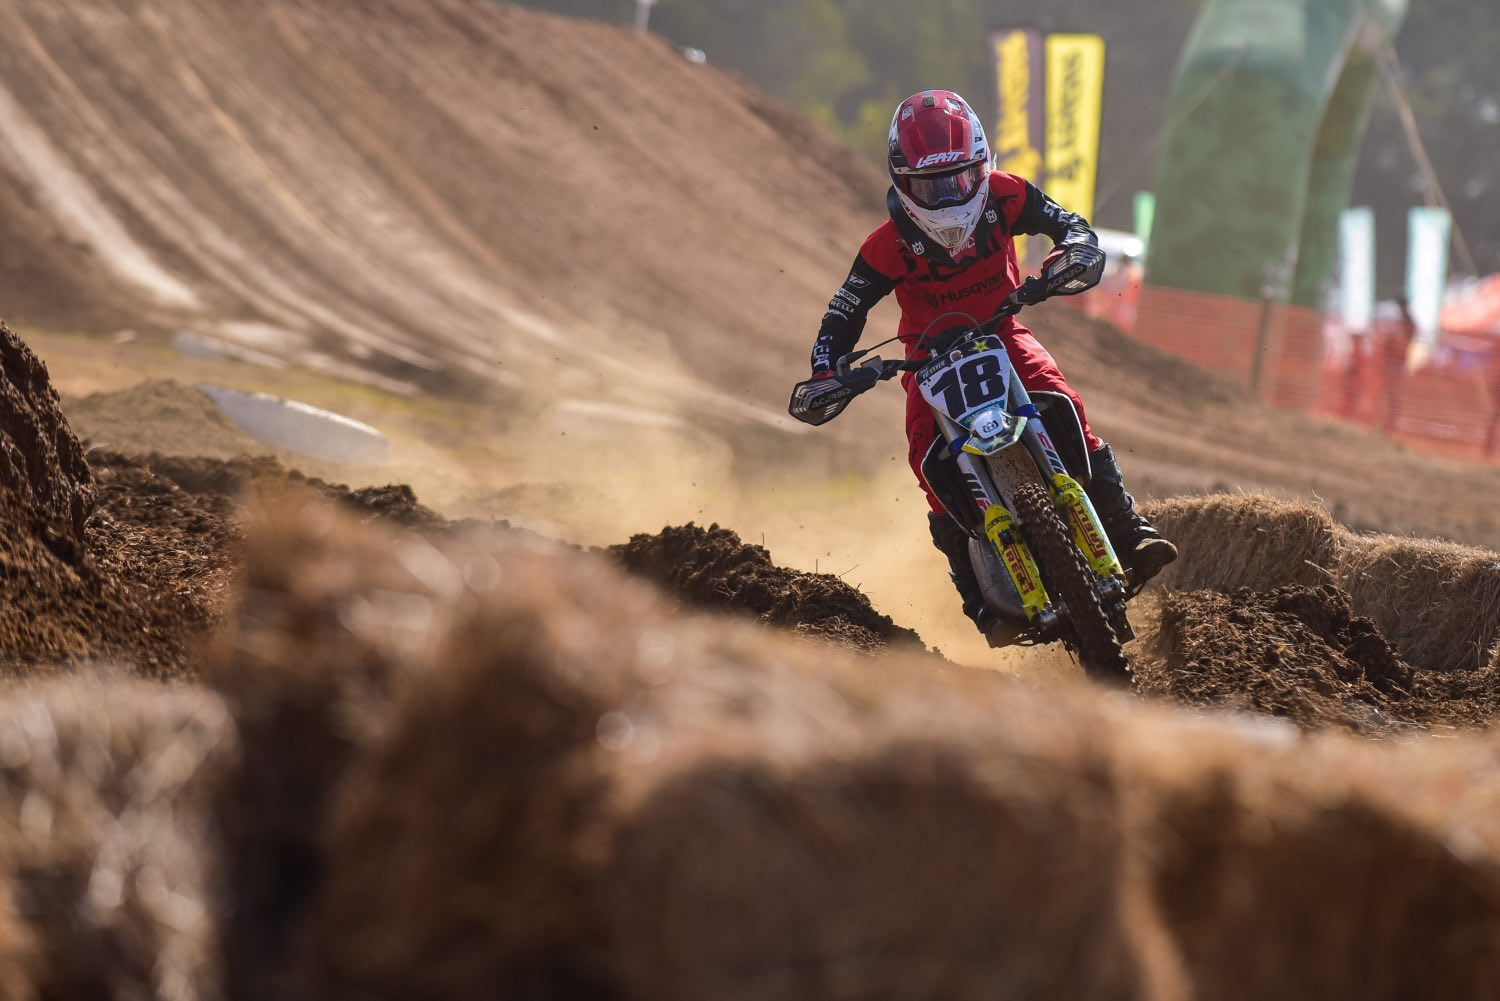 Neil van der Vyver racing the fifth round of the 2021 South African National Motocross Championship